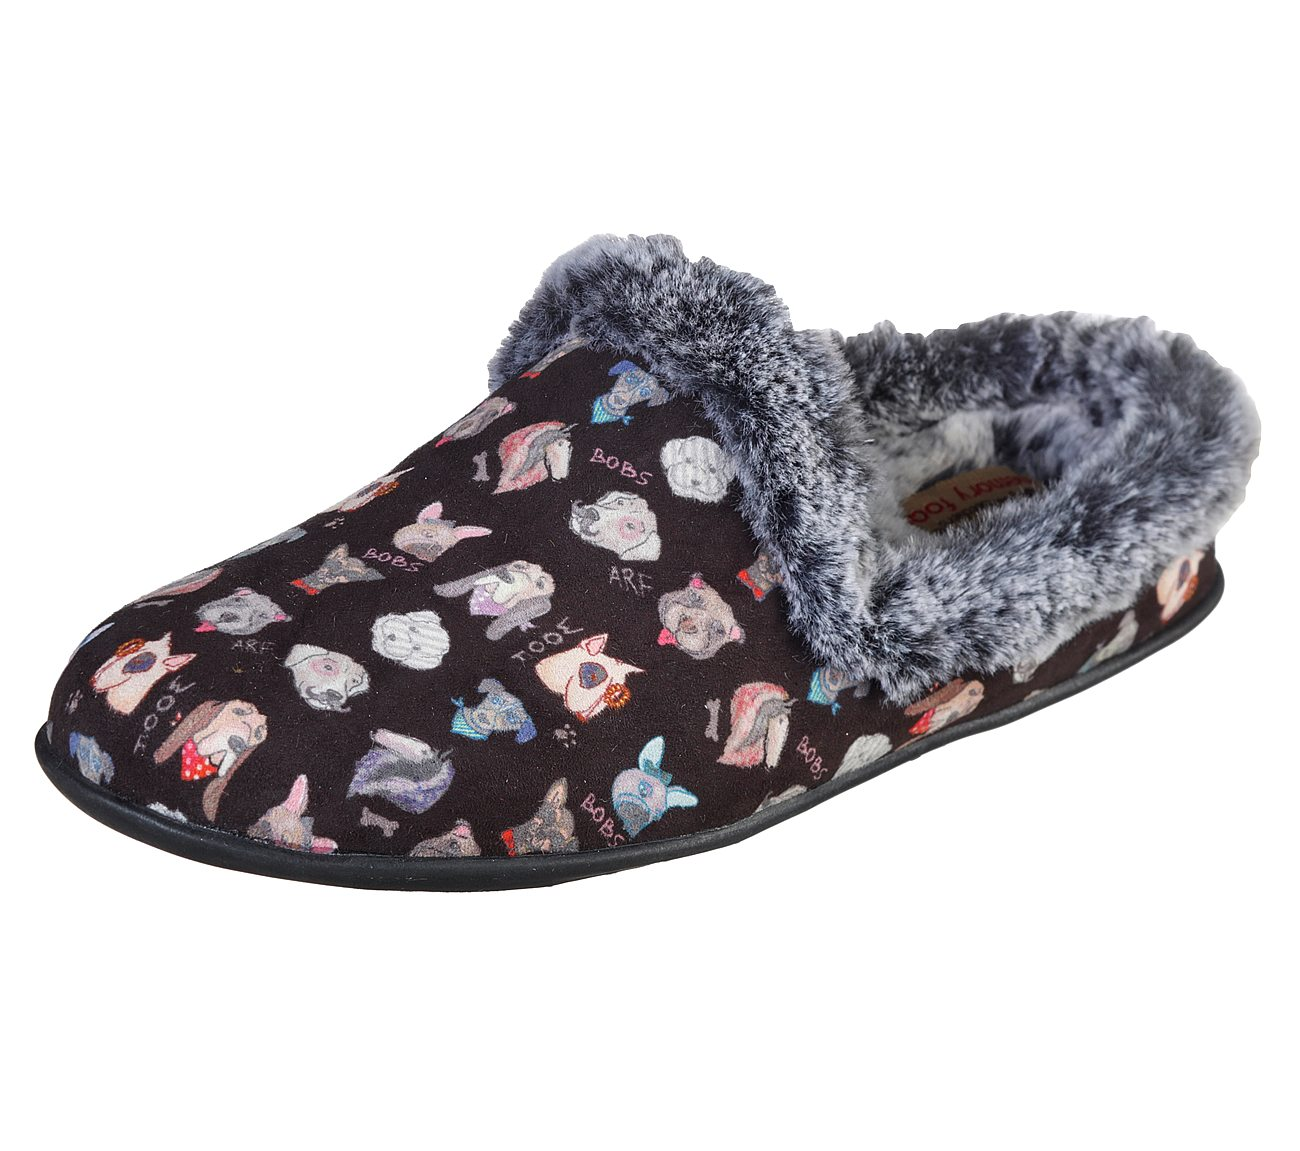 SKECHERS BOBS for Dogs Beach Bonfire - Dapper Nap